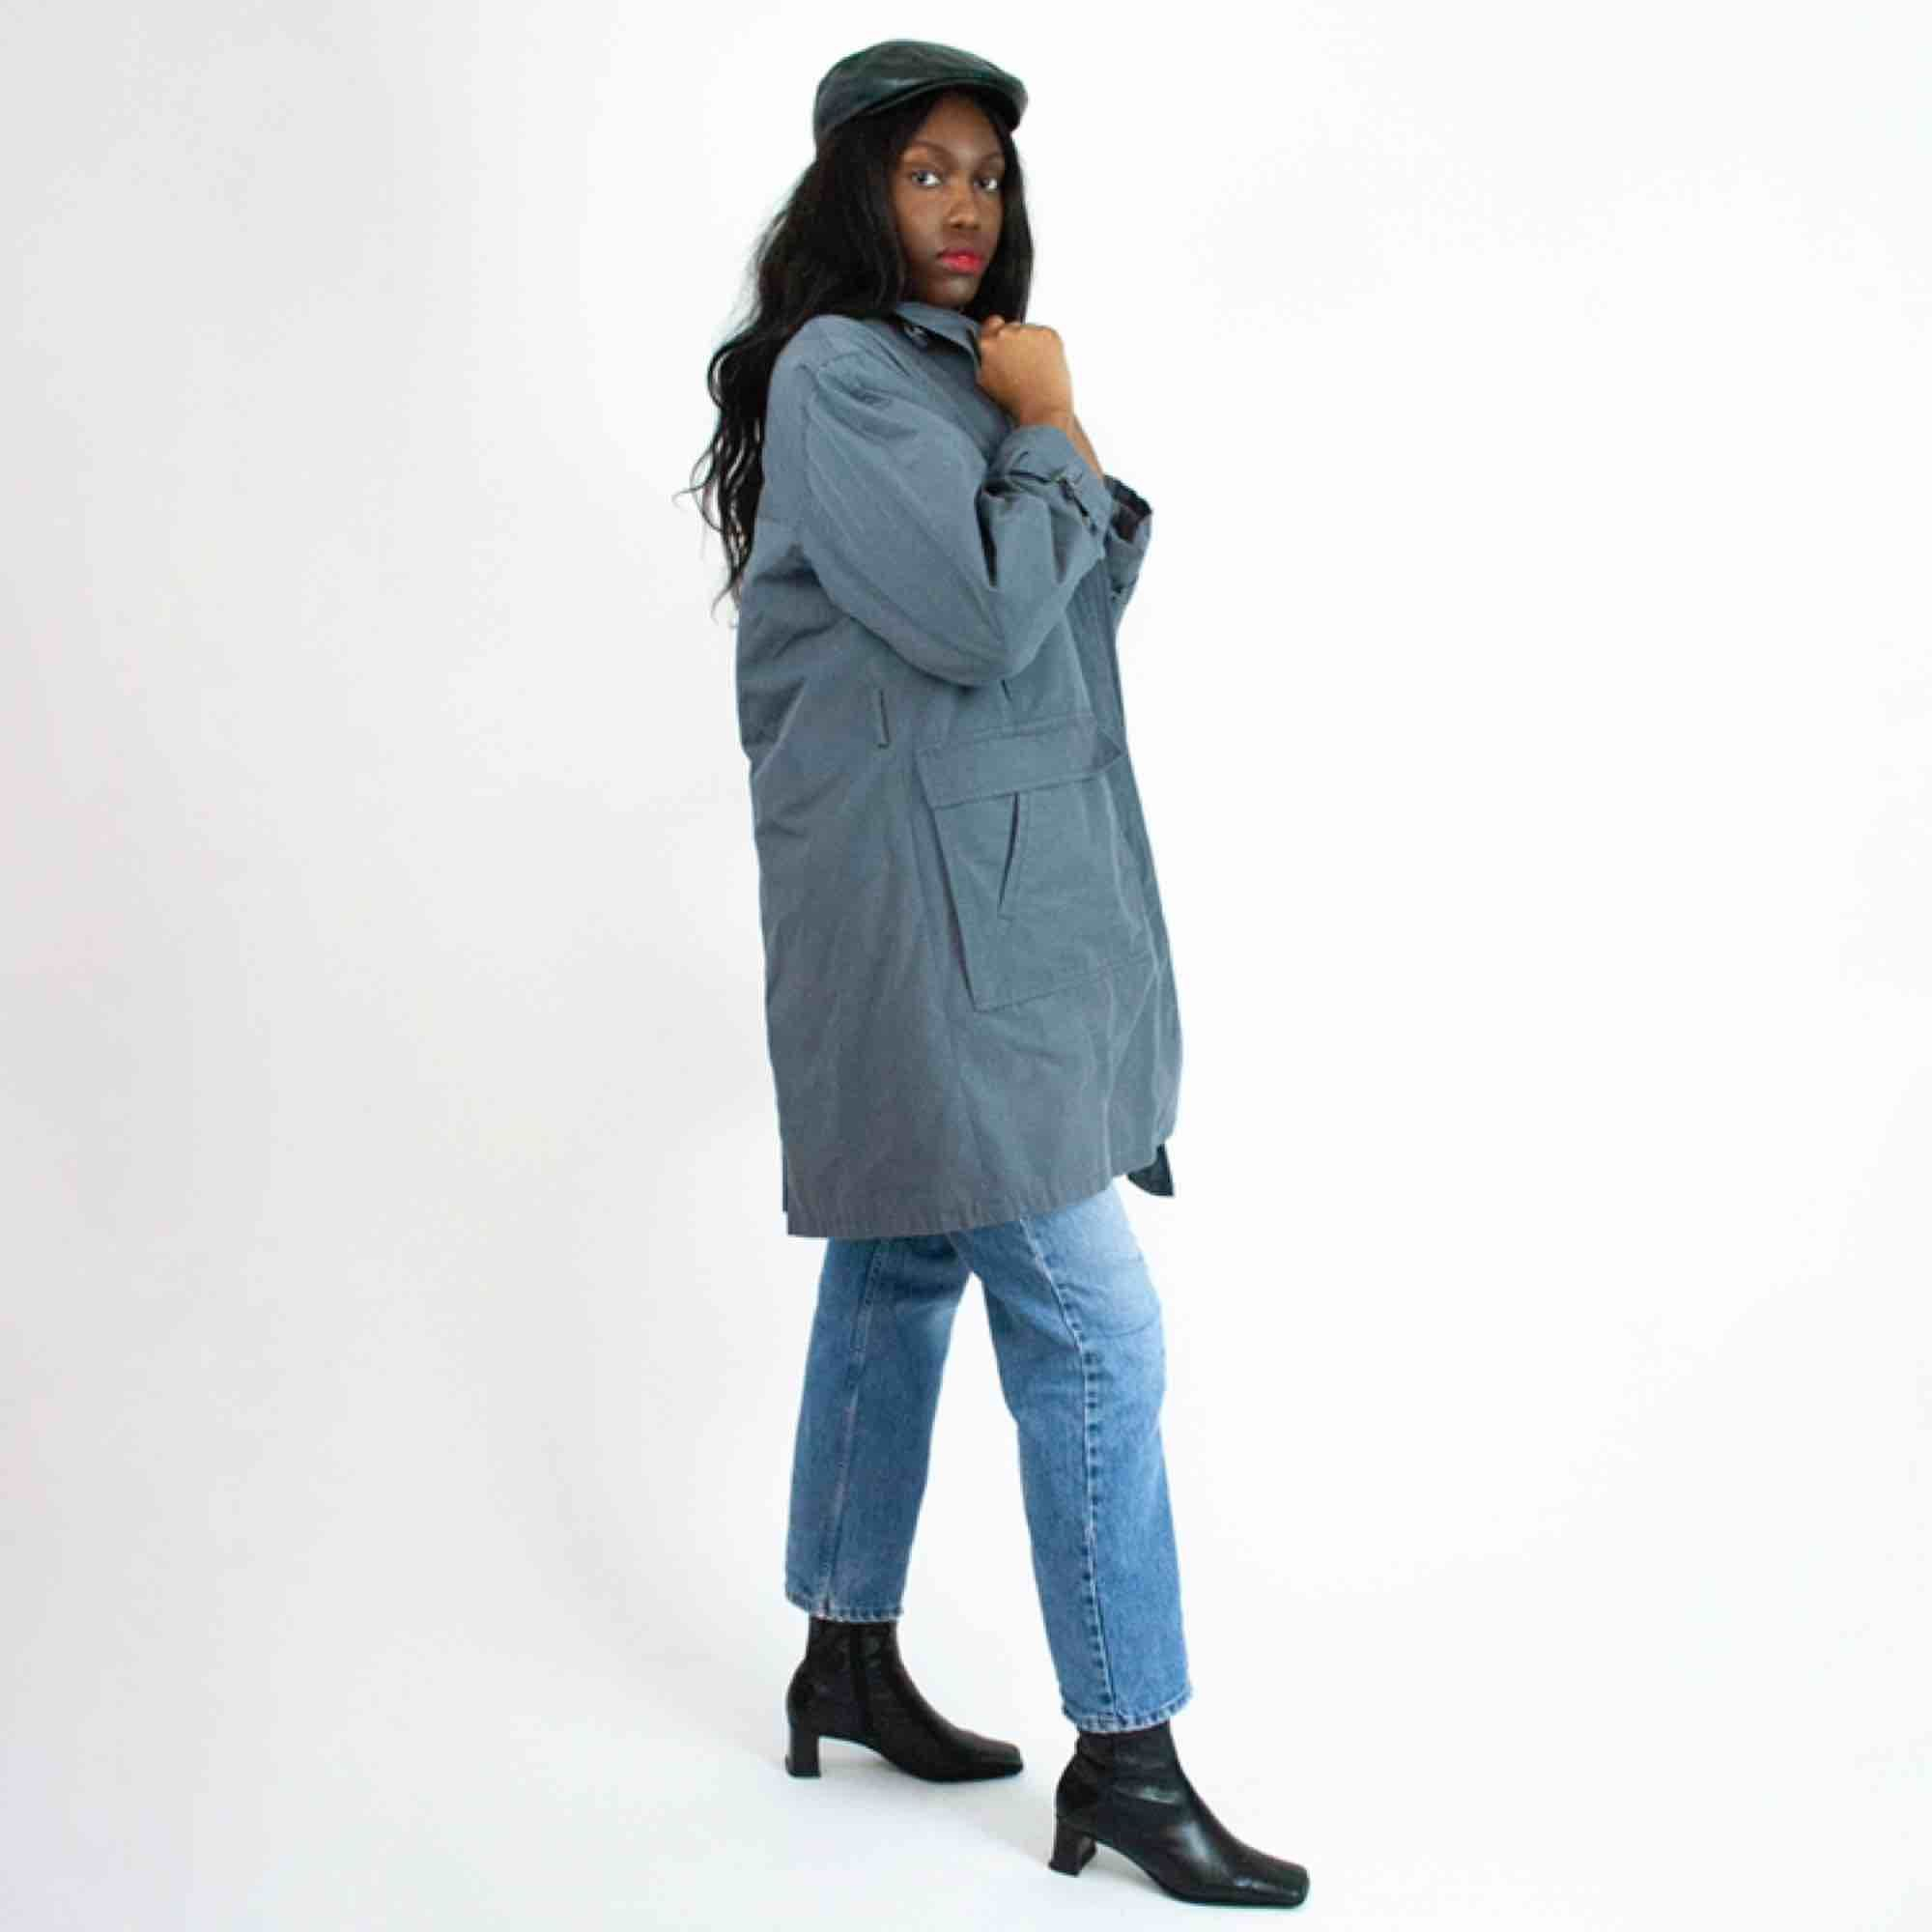 Vintage 90s unisex coat in grey Discoloration/marks on lining, no belt  SIZE No label, fits best XS-M Model: 177/S Measurements (flat): Length: 95 Pit to pit: 60 Sleeve inseam: 46 Free shipping! Full description at our website majorunit.com No returns . Jackor.